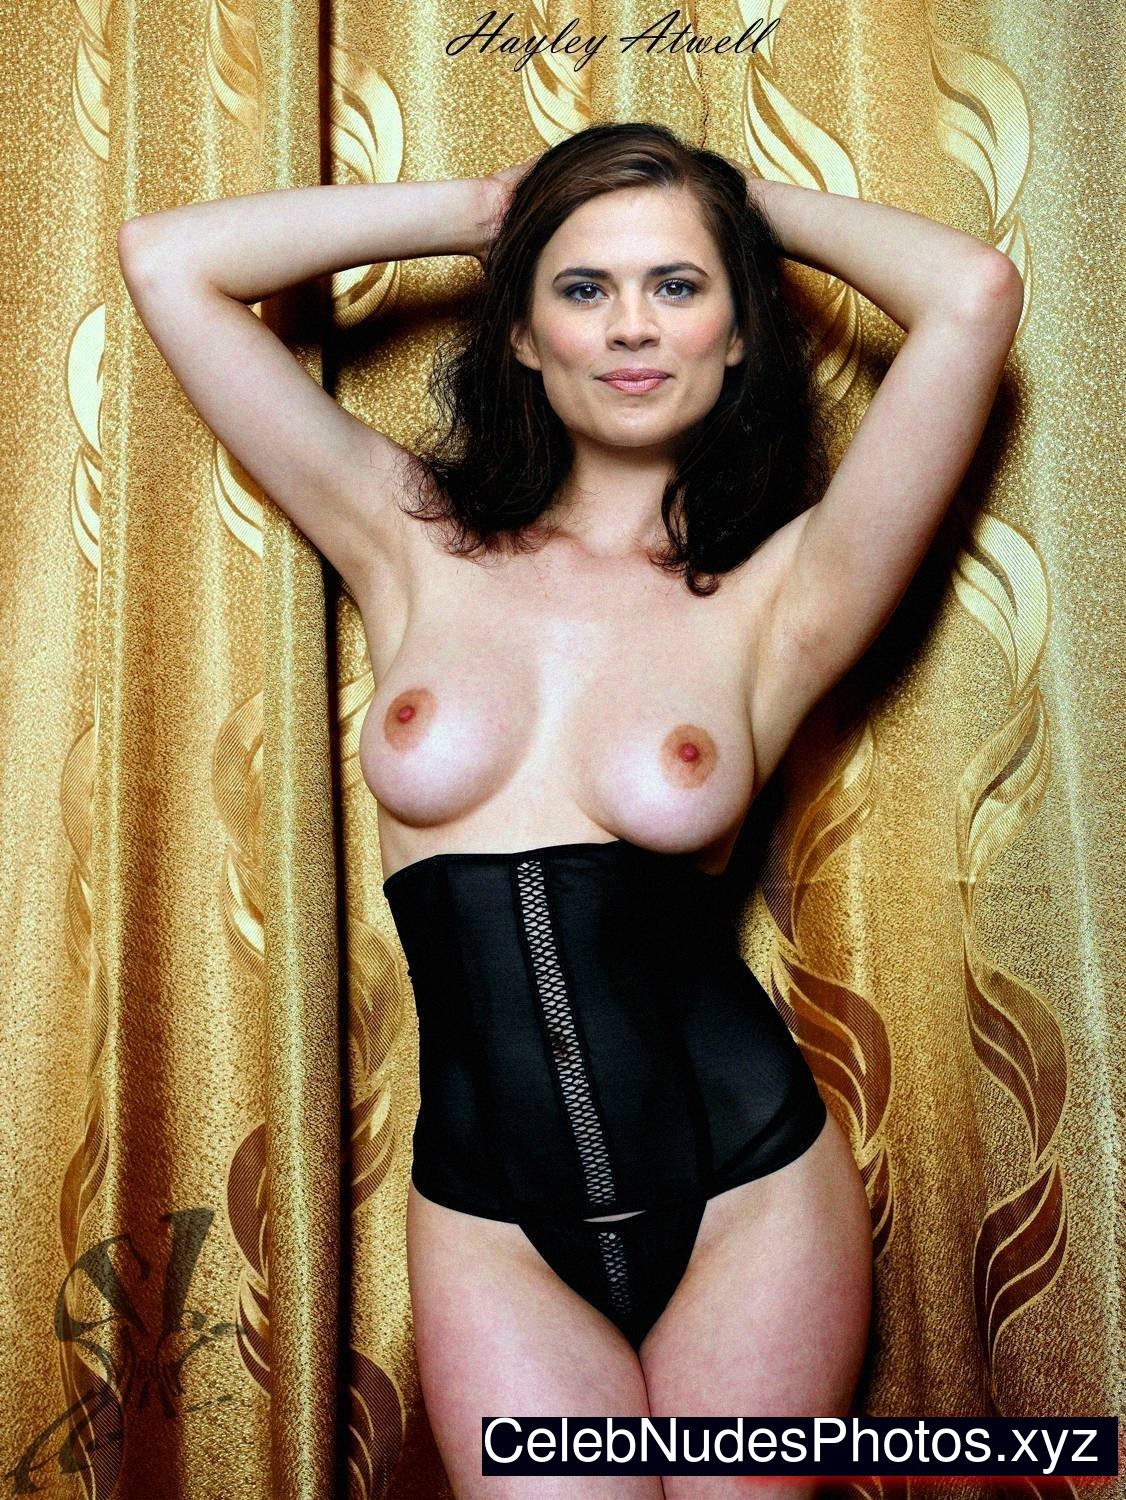 Hayley Atwell Naked celebrity picture sexy 12